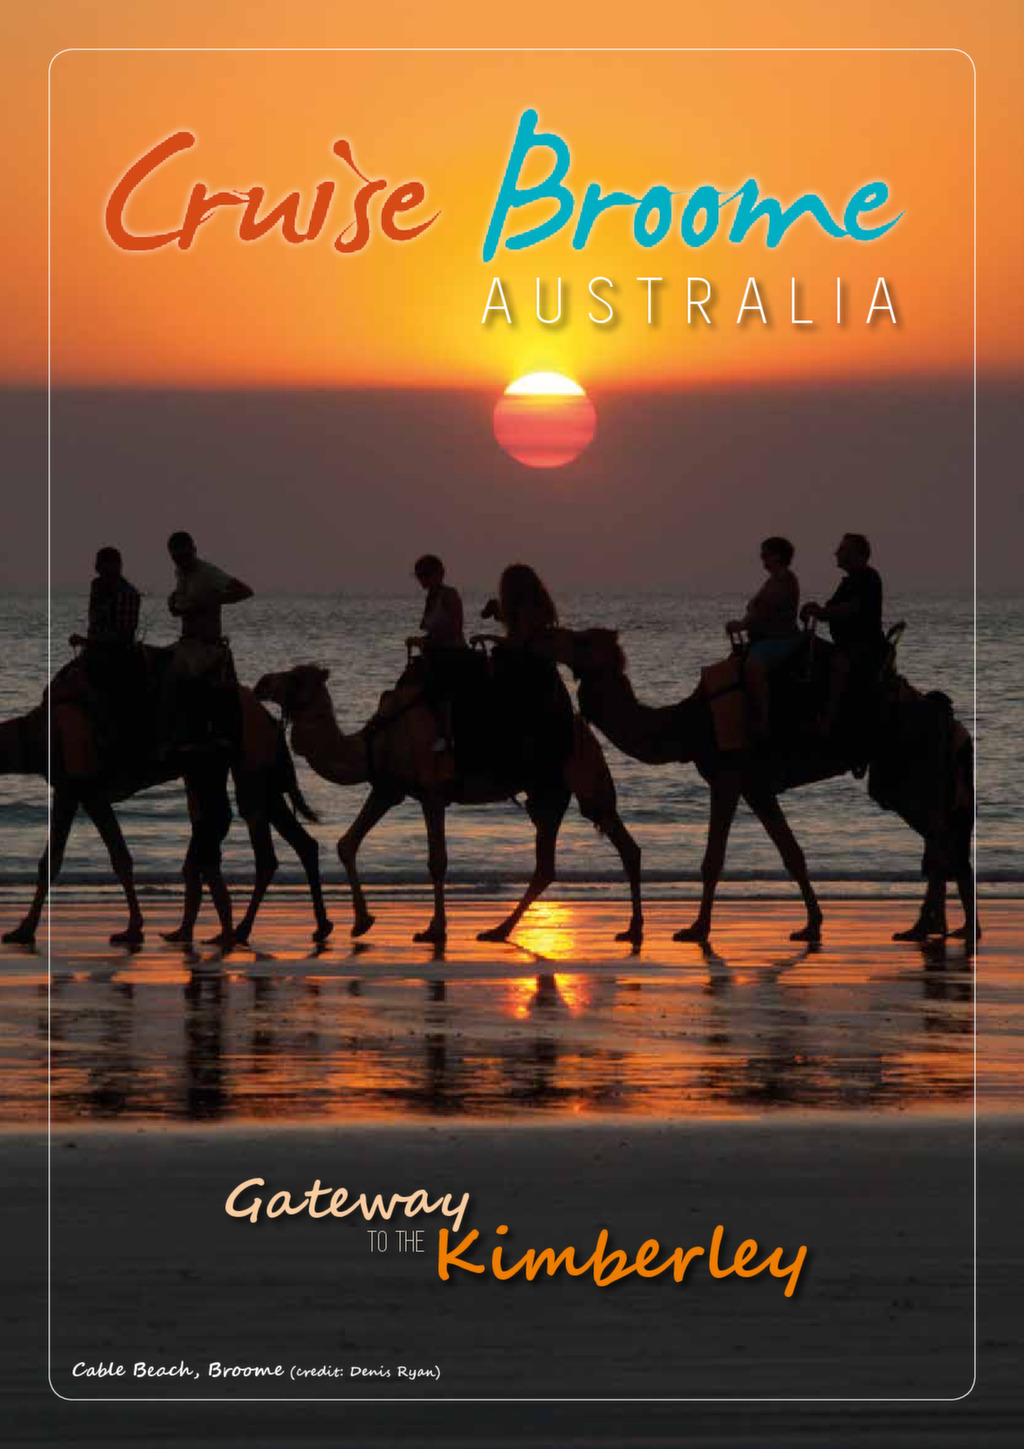 Cruise Broome Brochure